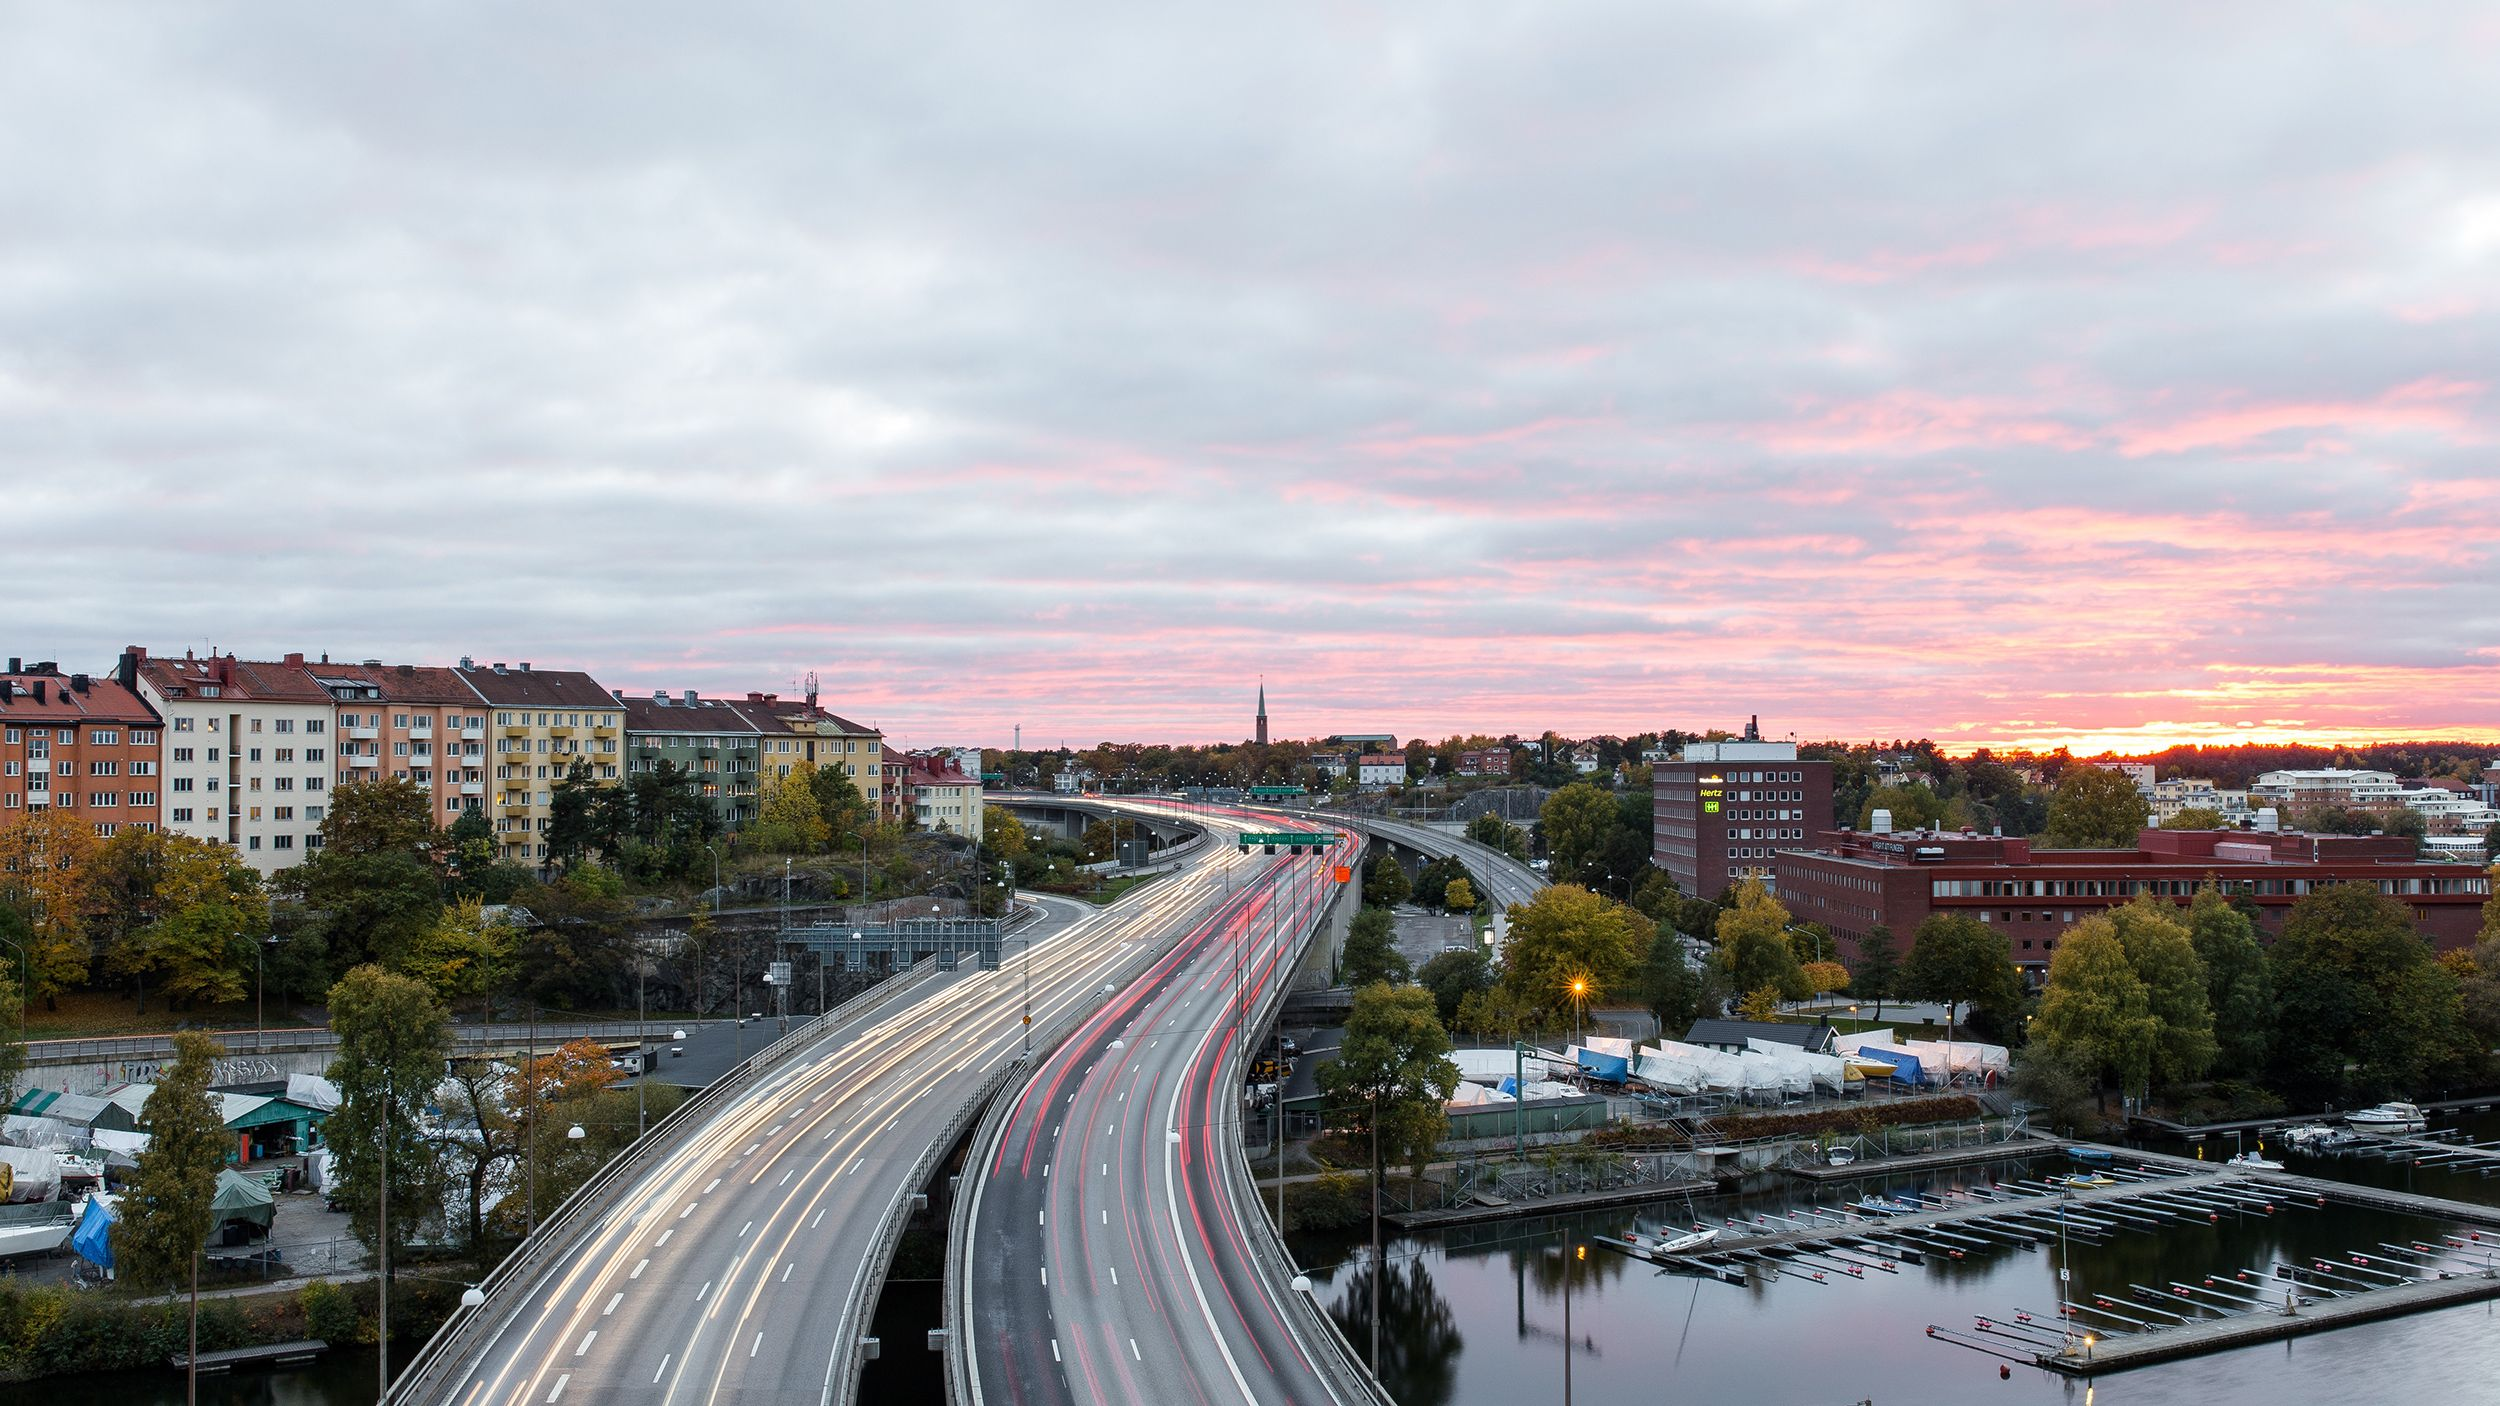 Photograph of Stockholm Road to Södermalm